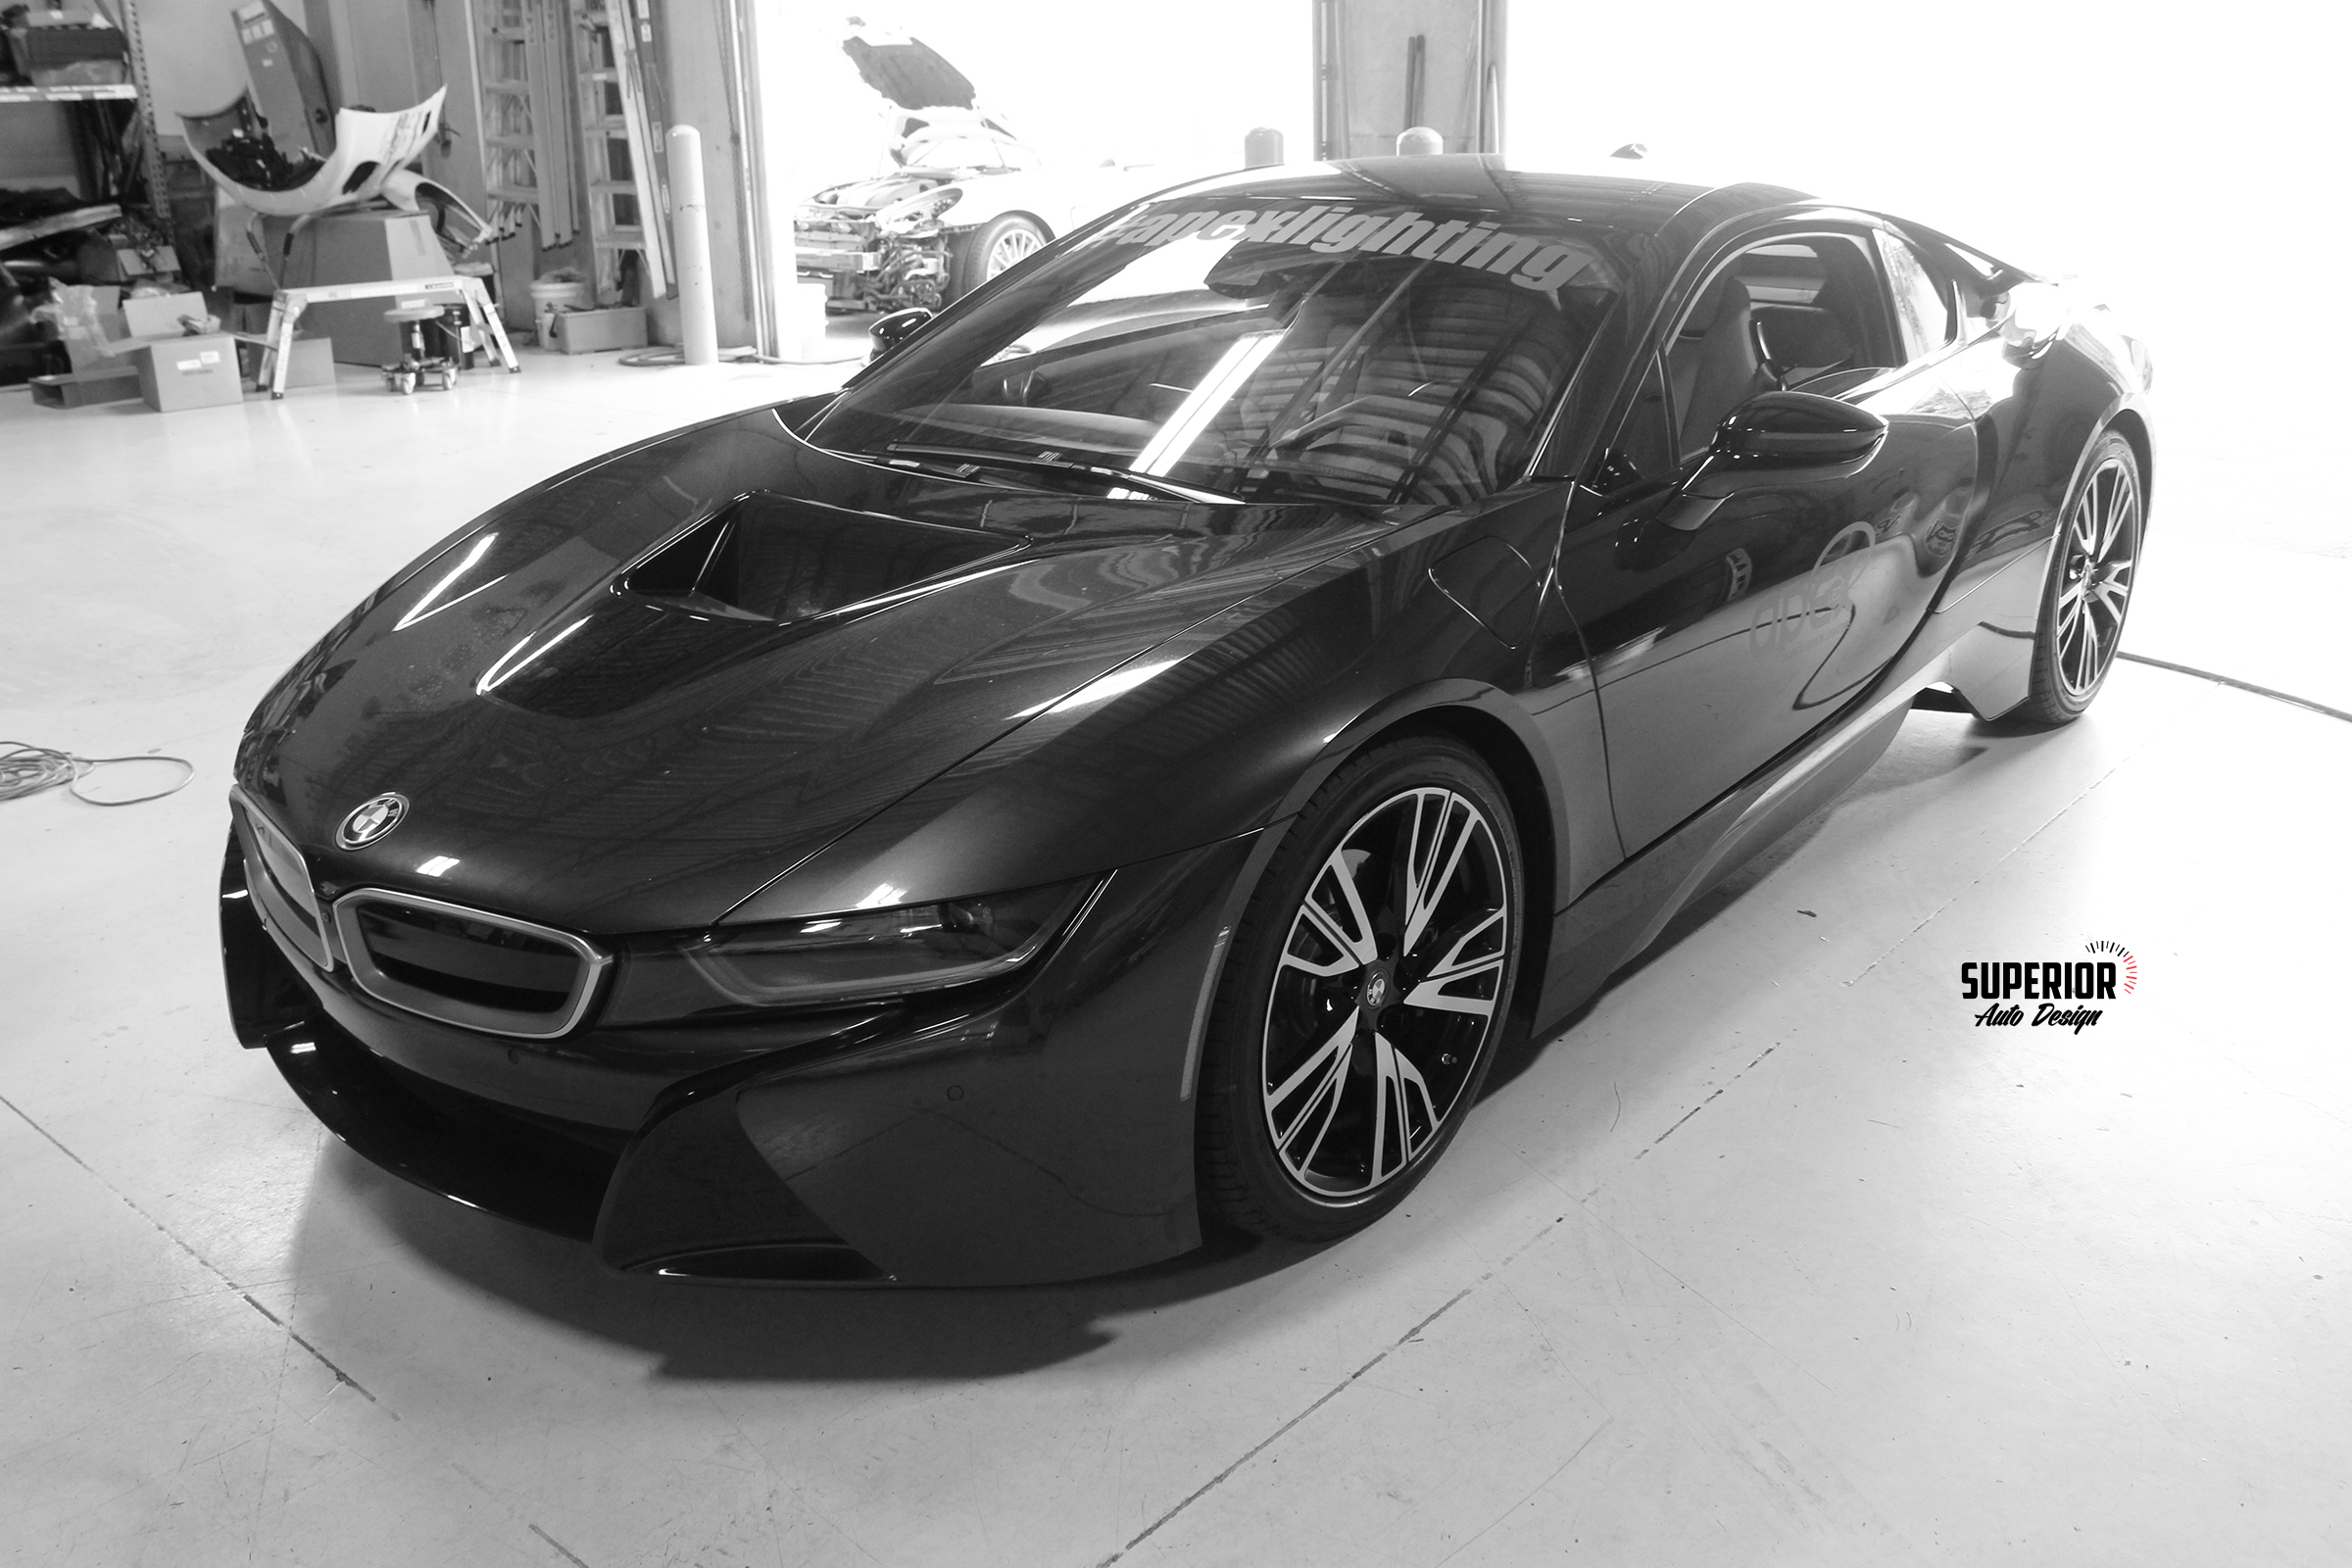 bmw-i8-superior-auto-design-1